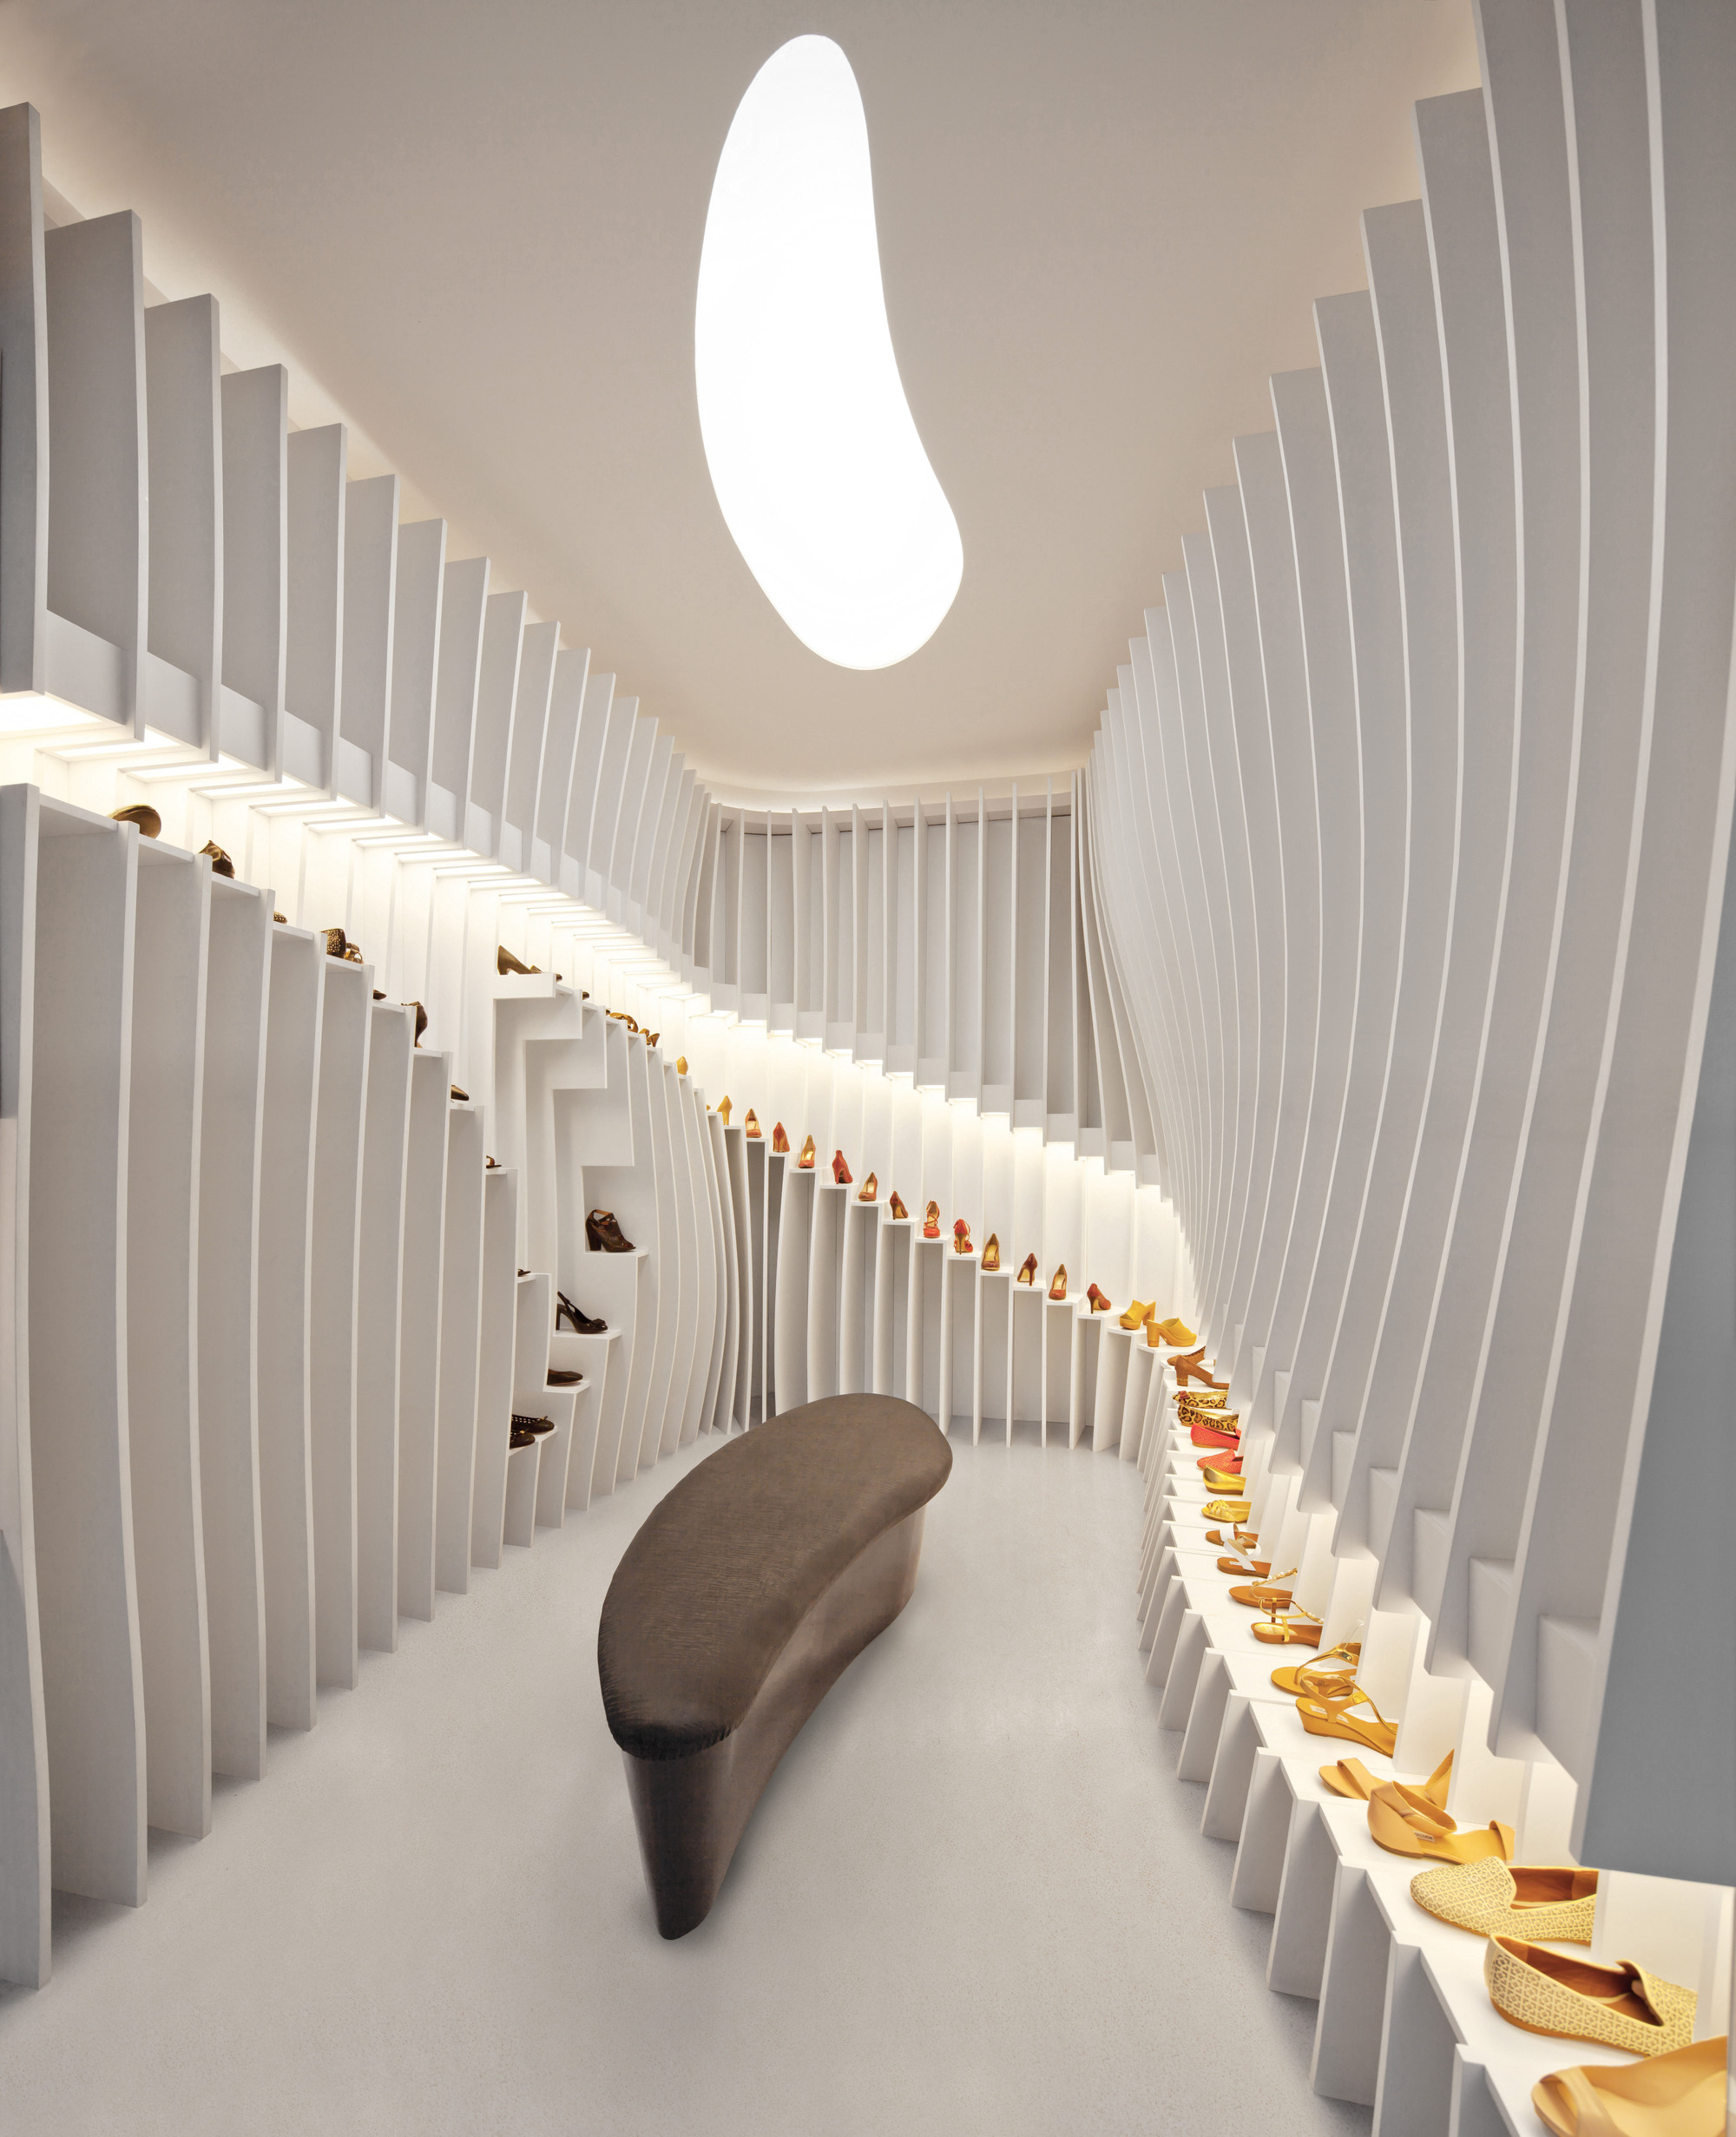 'importance Of Walking' Store Praxis 'architecture Archdaily